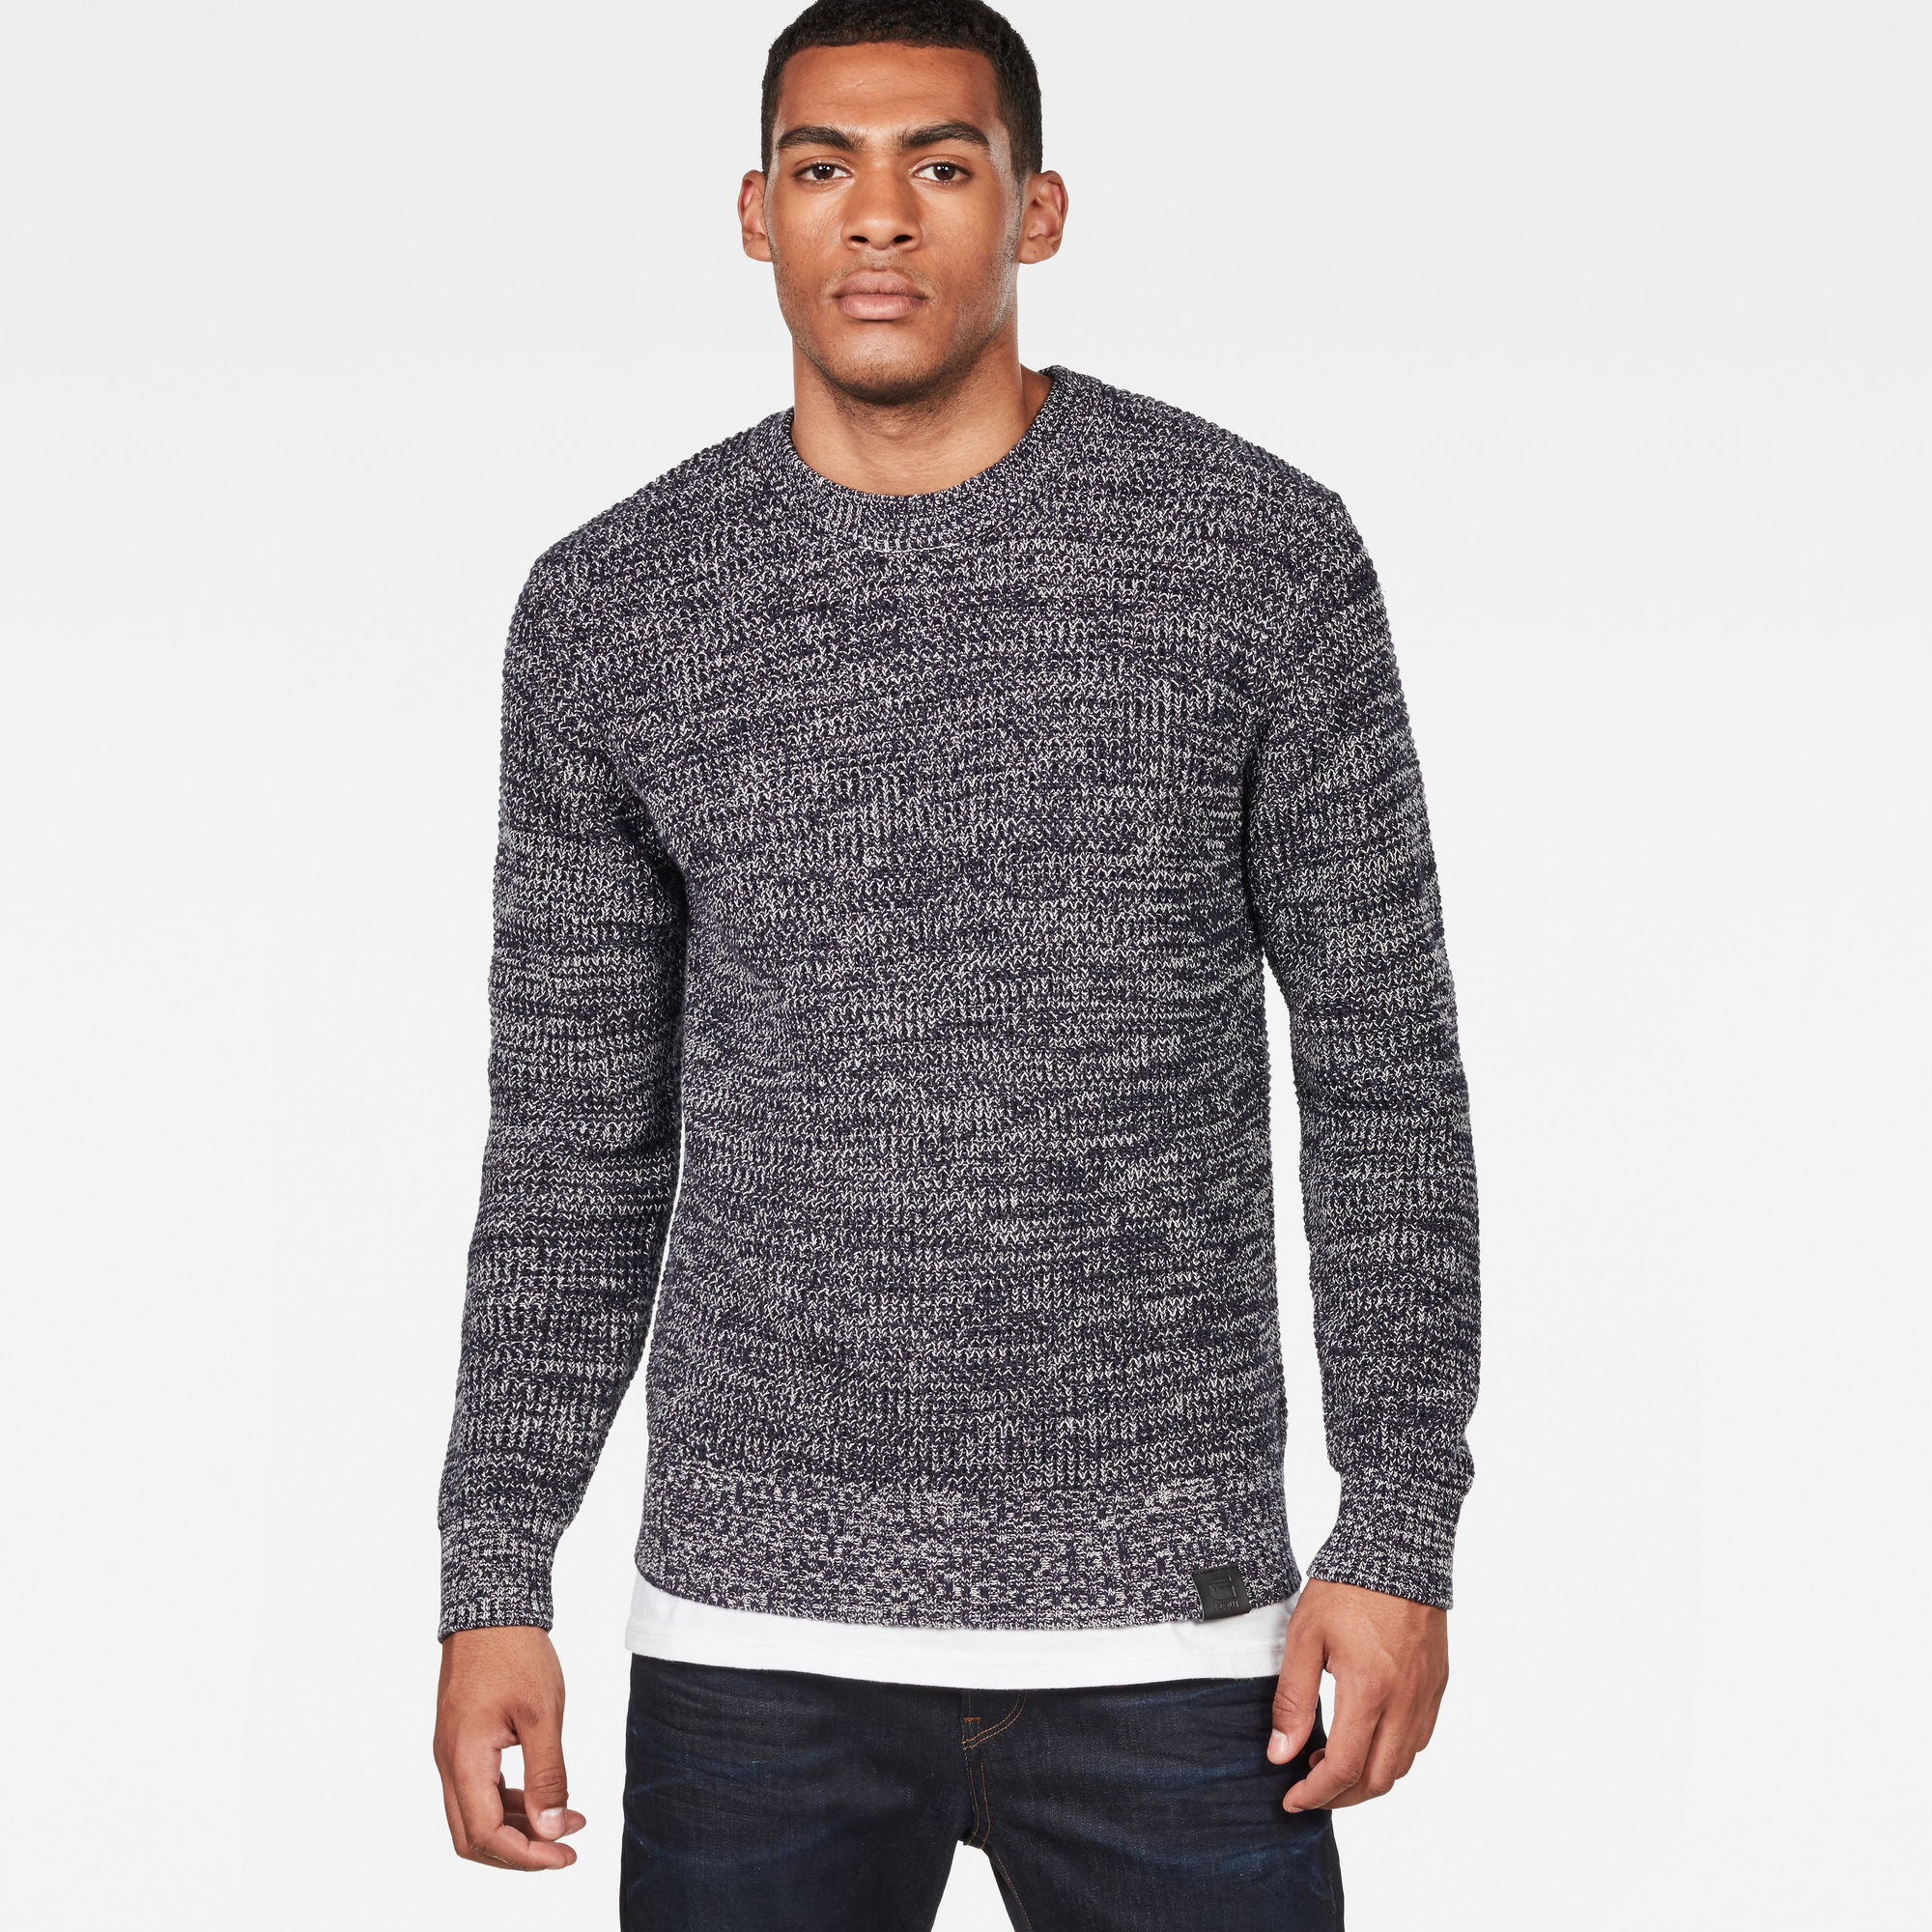 Image of G Star Raw Jayvi Knit